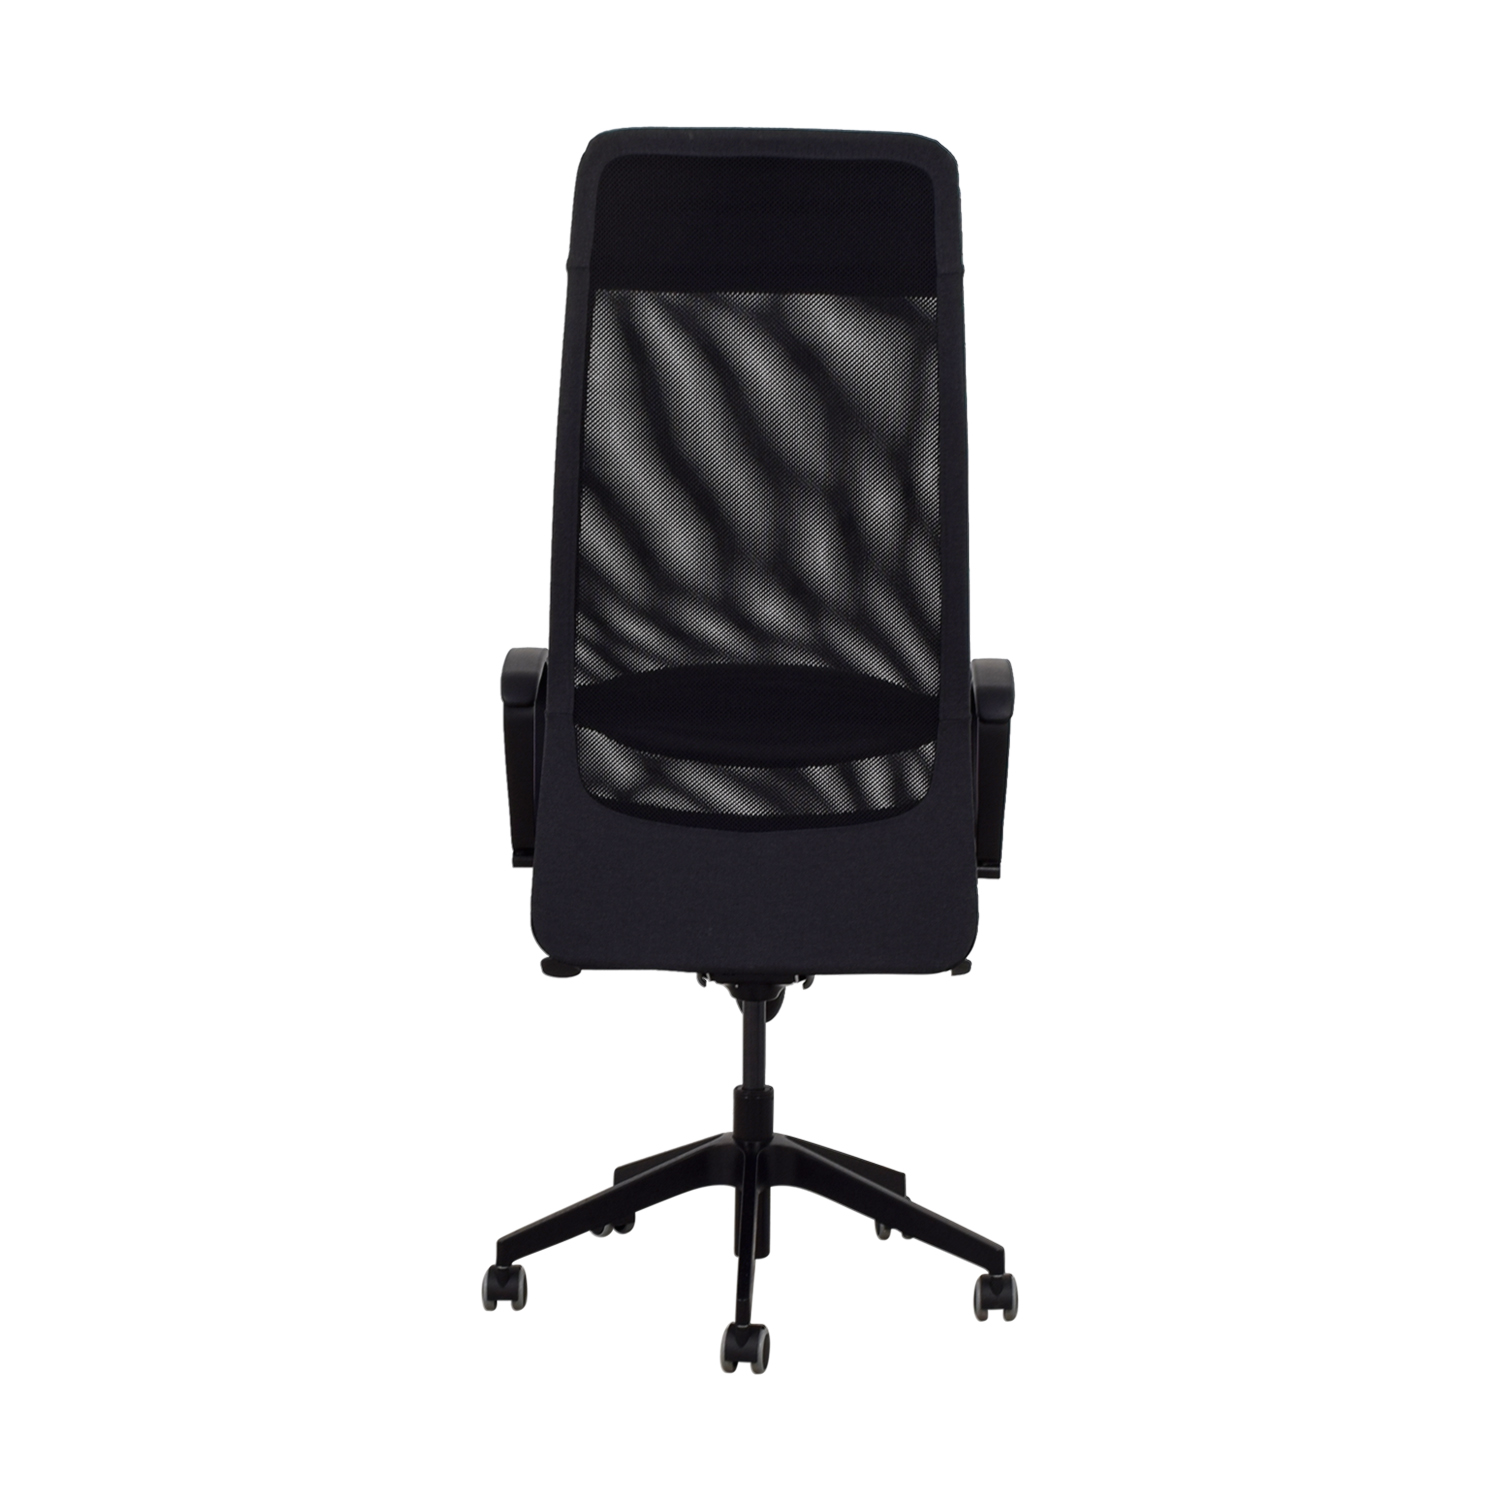 Ikea Desk Chair 68 Off Ikea Ikea Black Office Chair Chairs